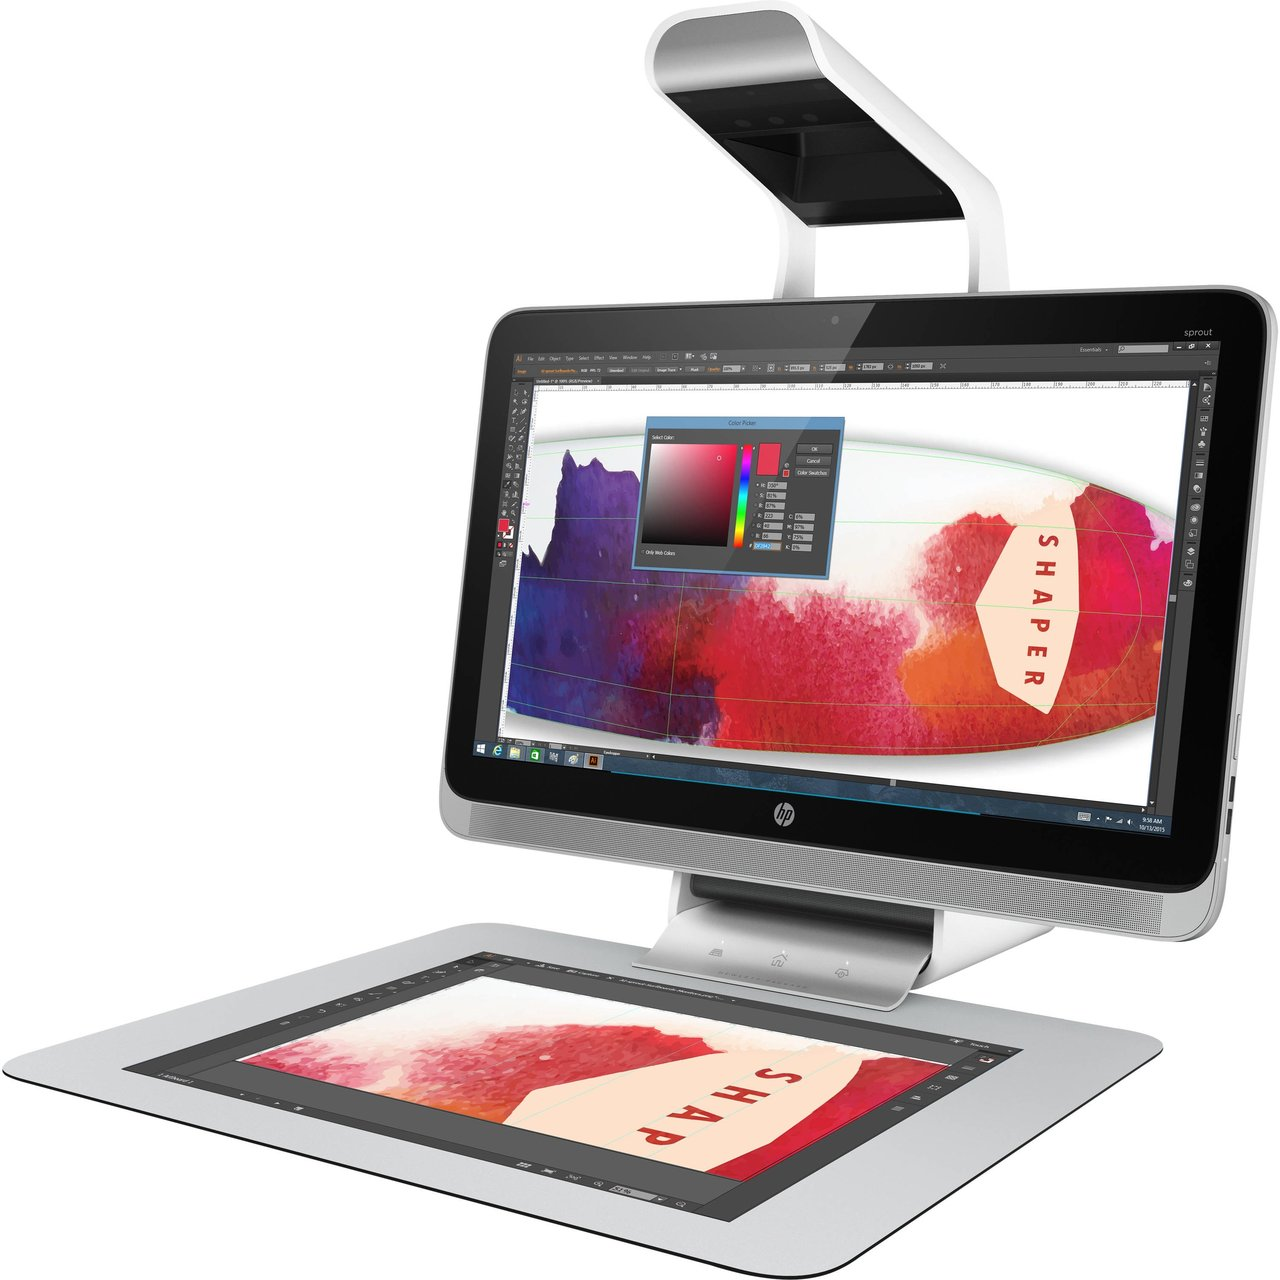 HP Sprout Pro Intel i7 All-in-One Business PC